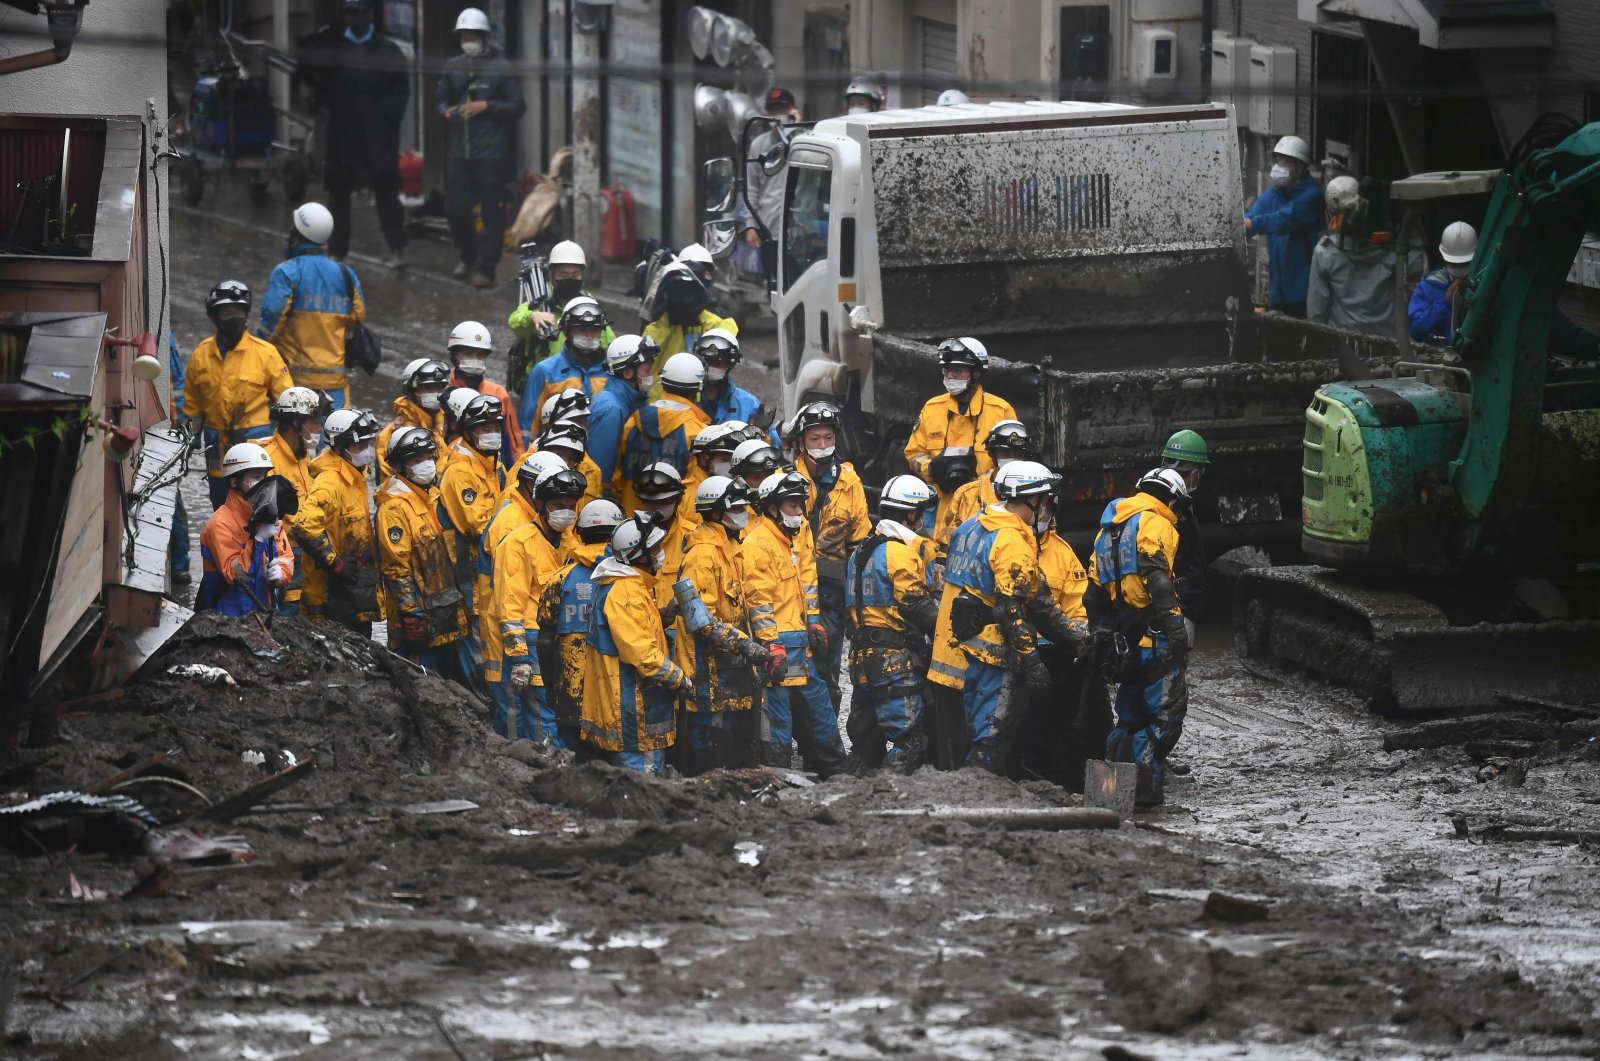 Police work at the scene of a landslide following days of heavy rain in Atami in Shizuoka Prefecture, Japan, July 4, 2021. (AFP Photo)